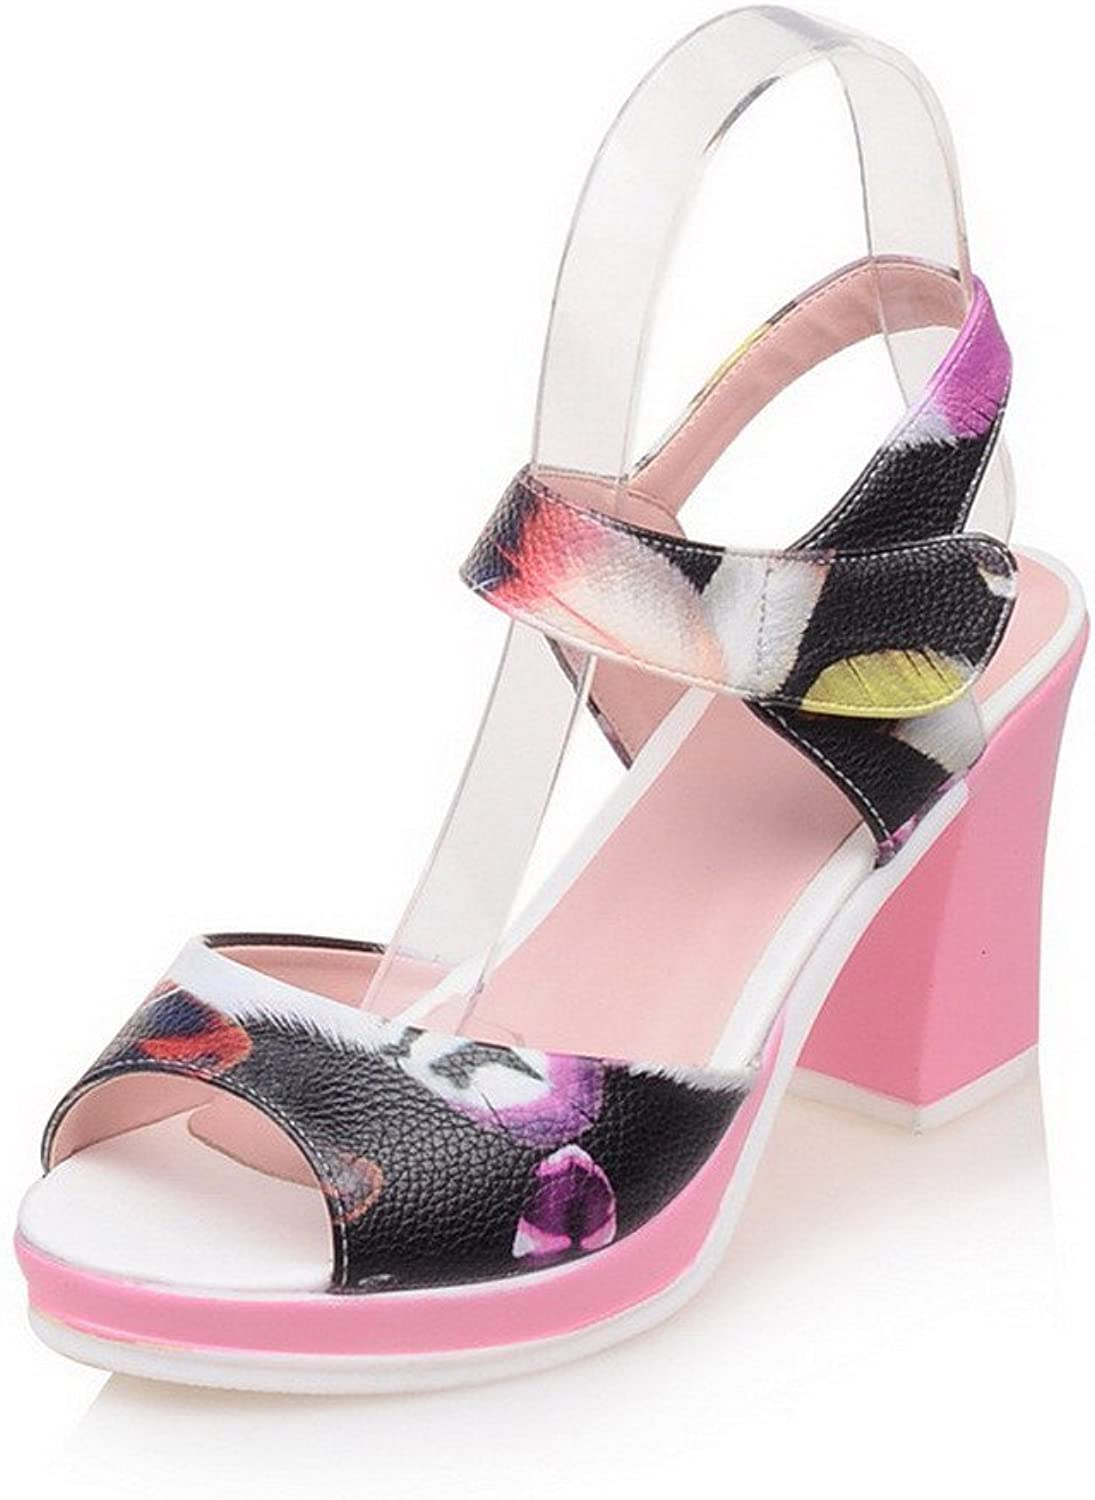 AllhqFashion Women's Open Toe High-Heels Soft Material Assorted color Hook-and-Loop Sandals